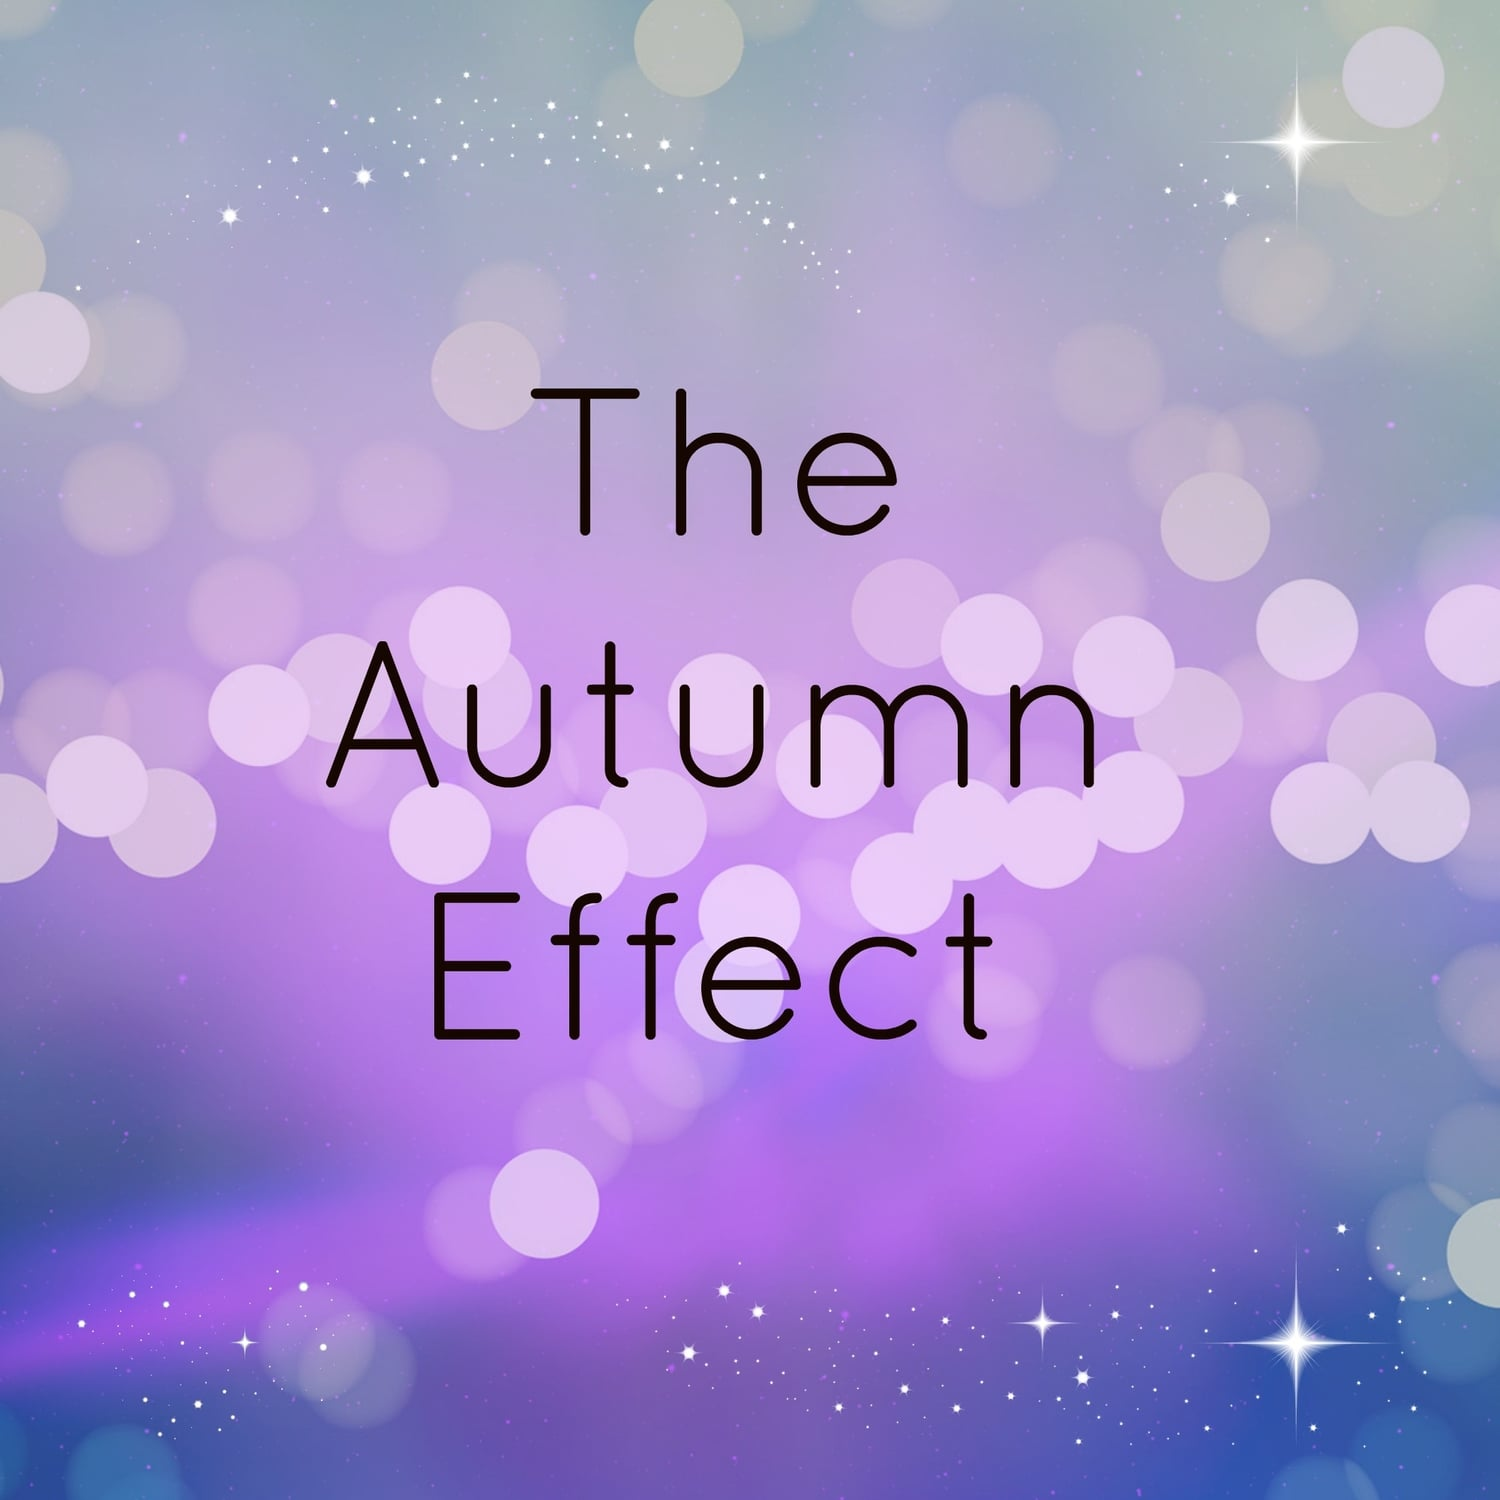 The Autumn Effect